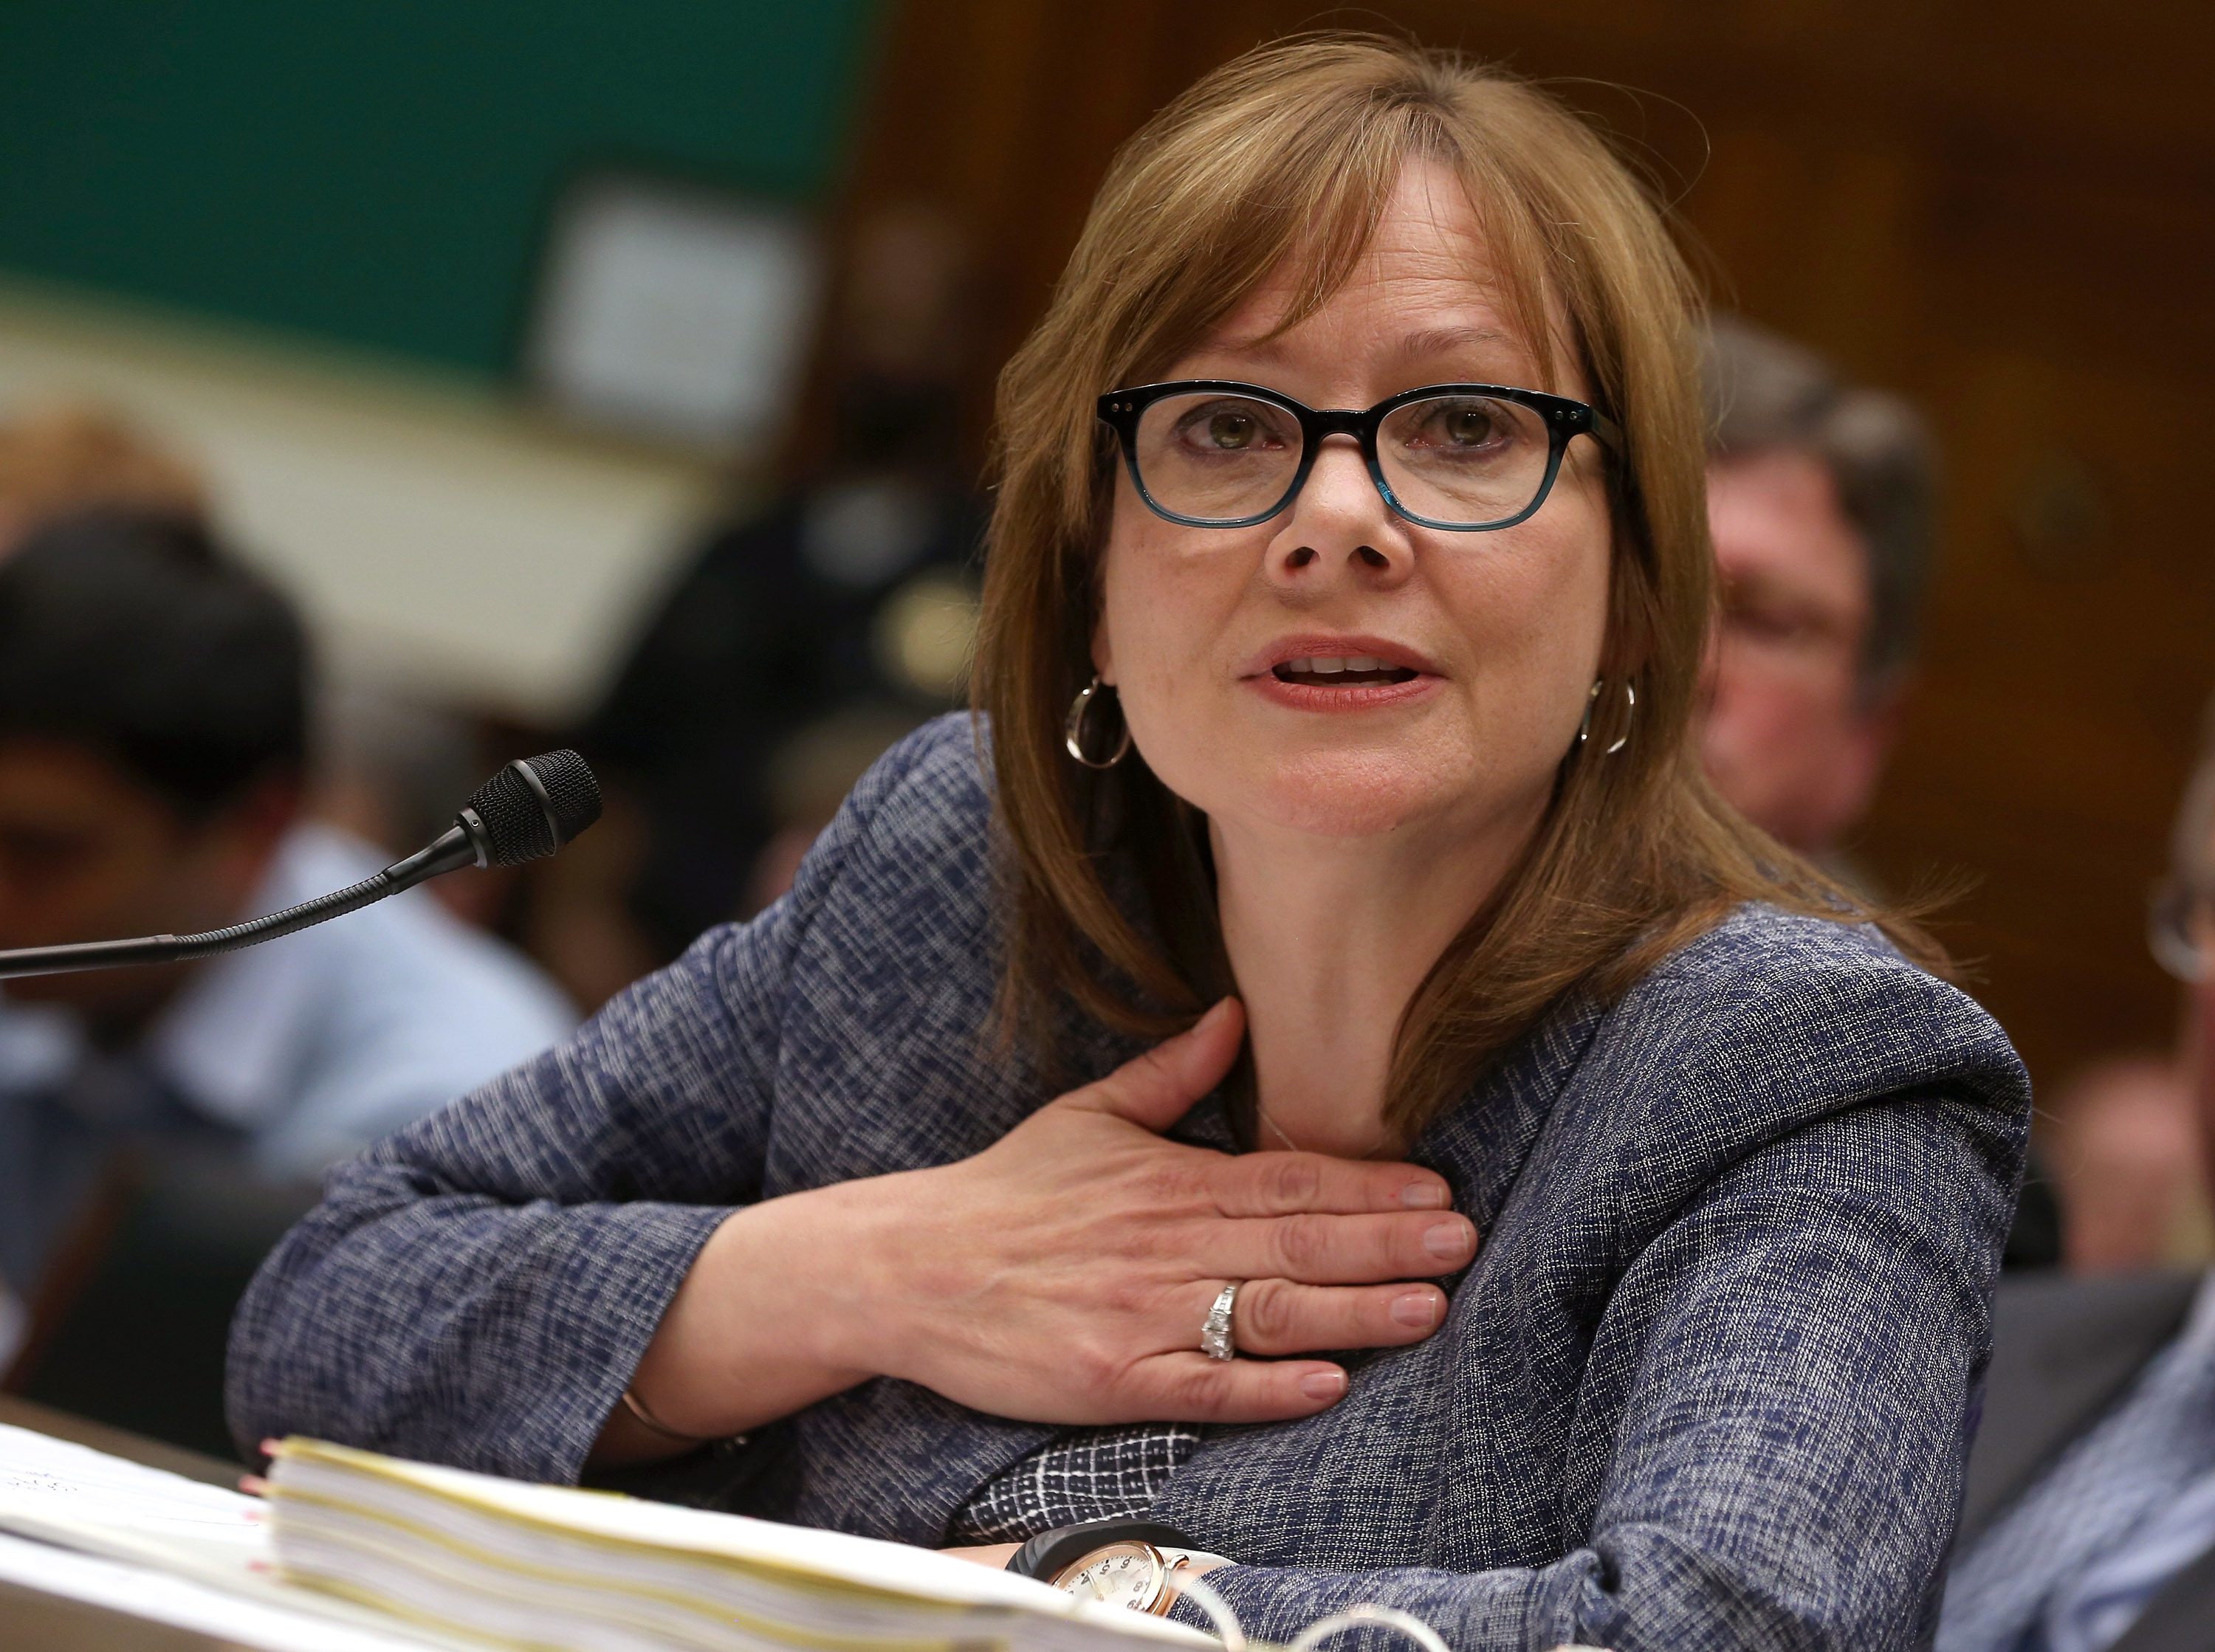 General Motors Company CEO Mary Barra testifies during a House Energy and Commerce Committee hearing on Capitol Hill, on April 1, 2014 in Washington, DC.